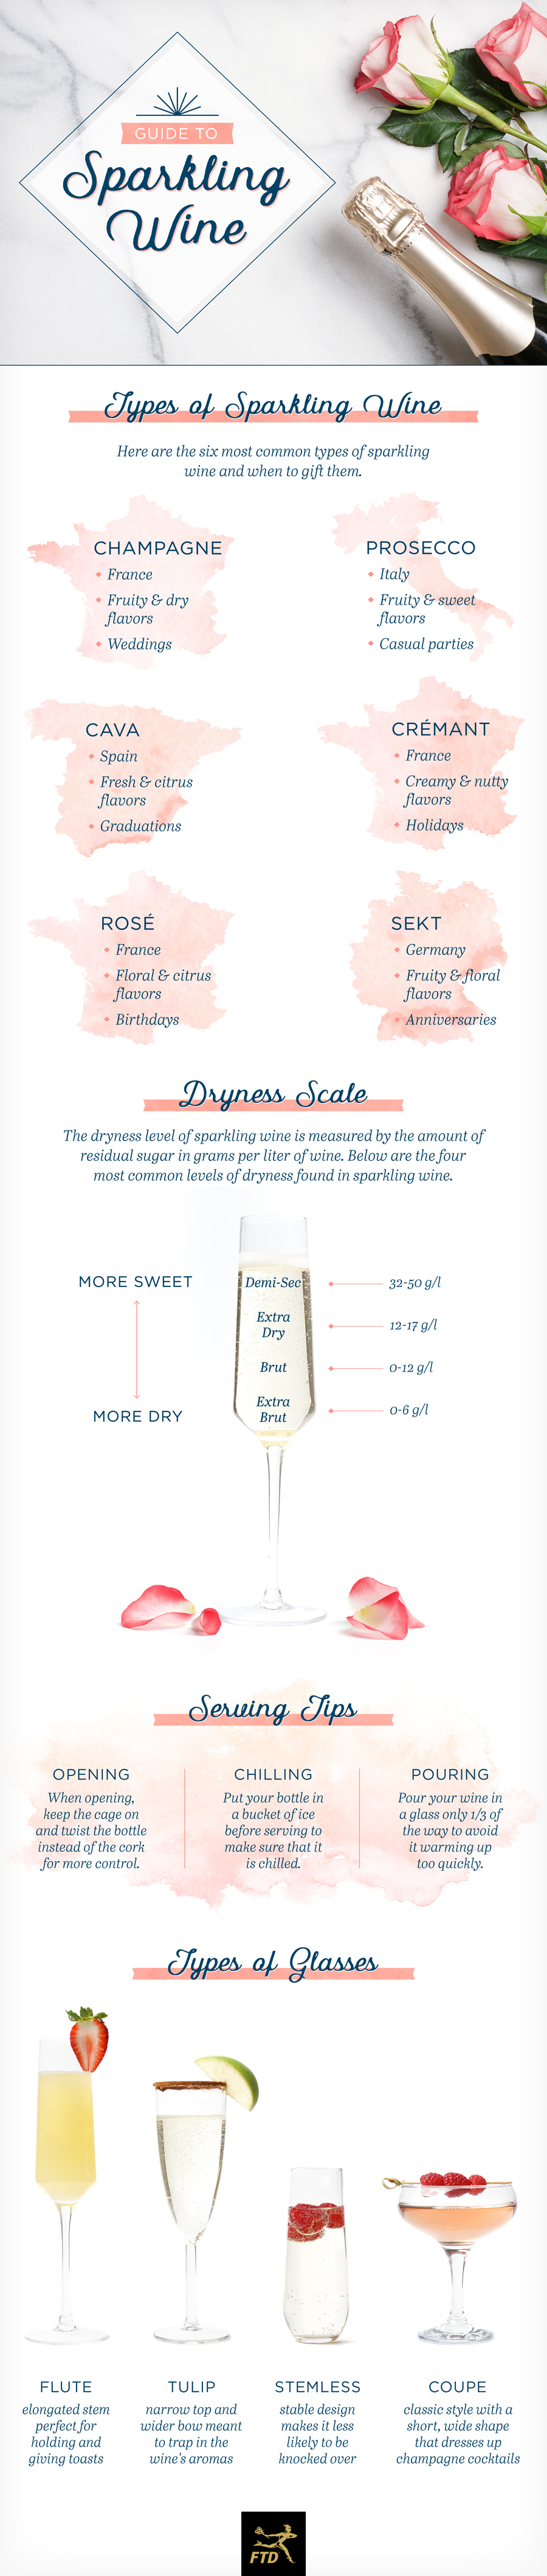 Happy Hoppy Bubbles: Popular Guide to Sparkling Wine - Infographic